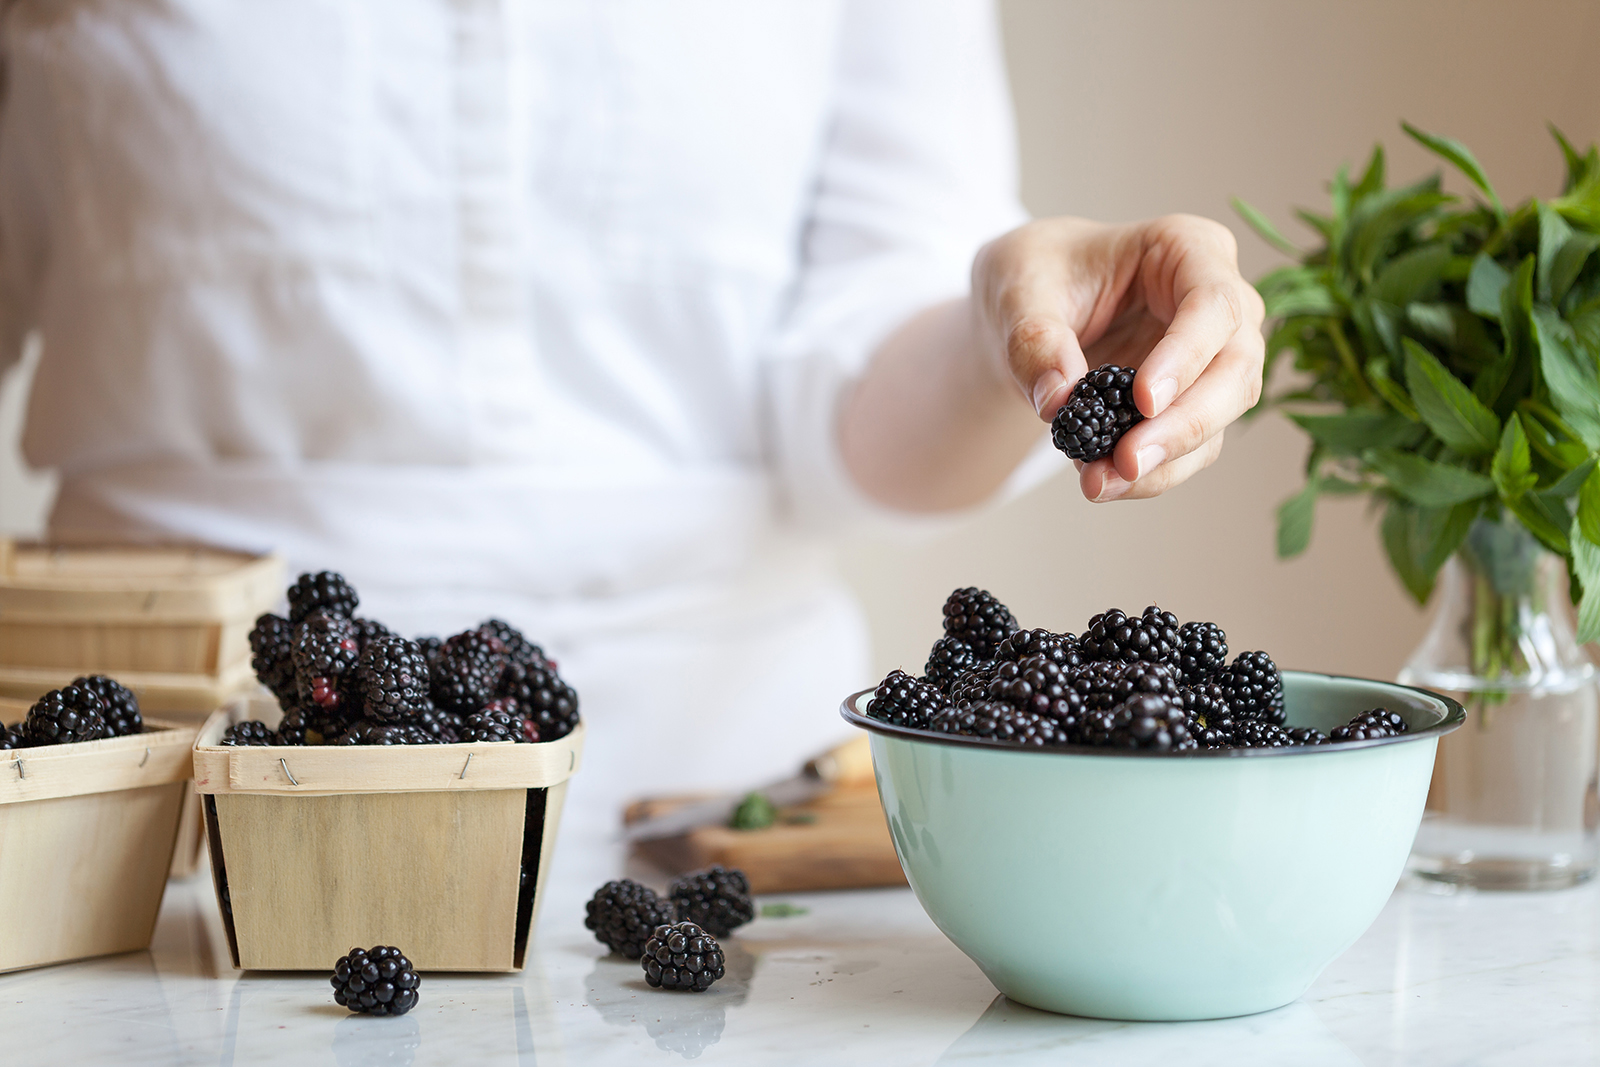 Blackberry | Now, Forager | Teresa Floyd